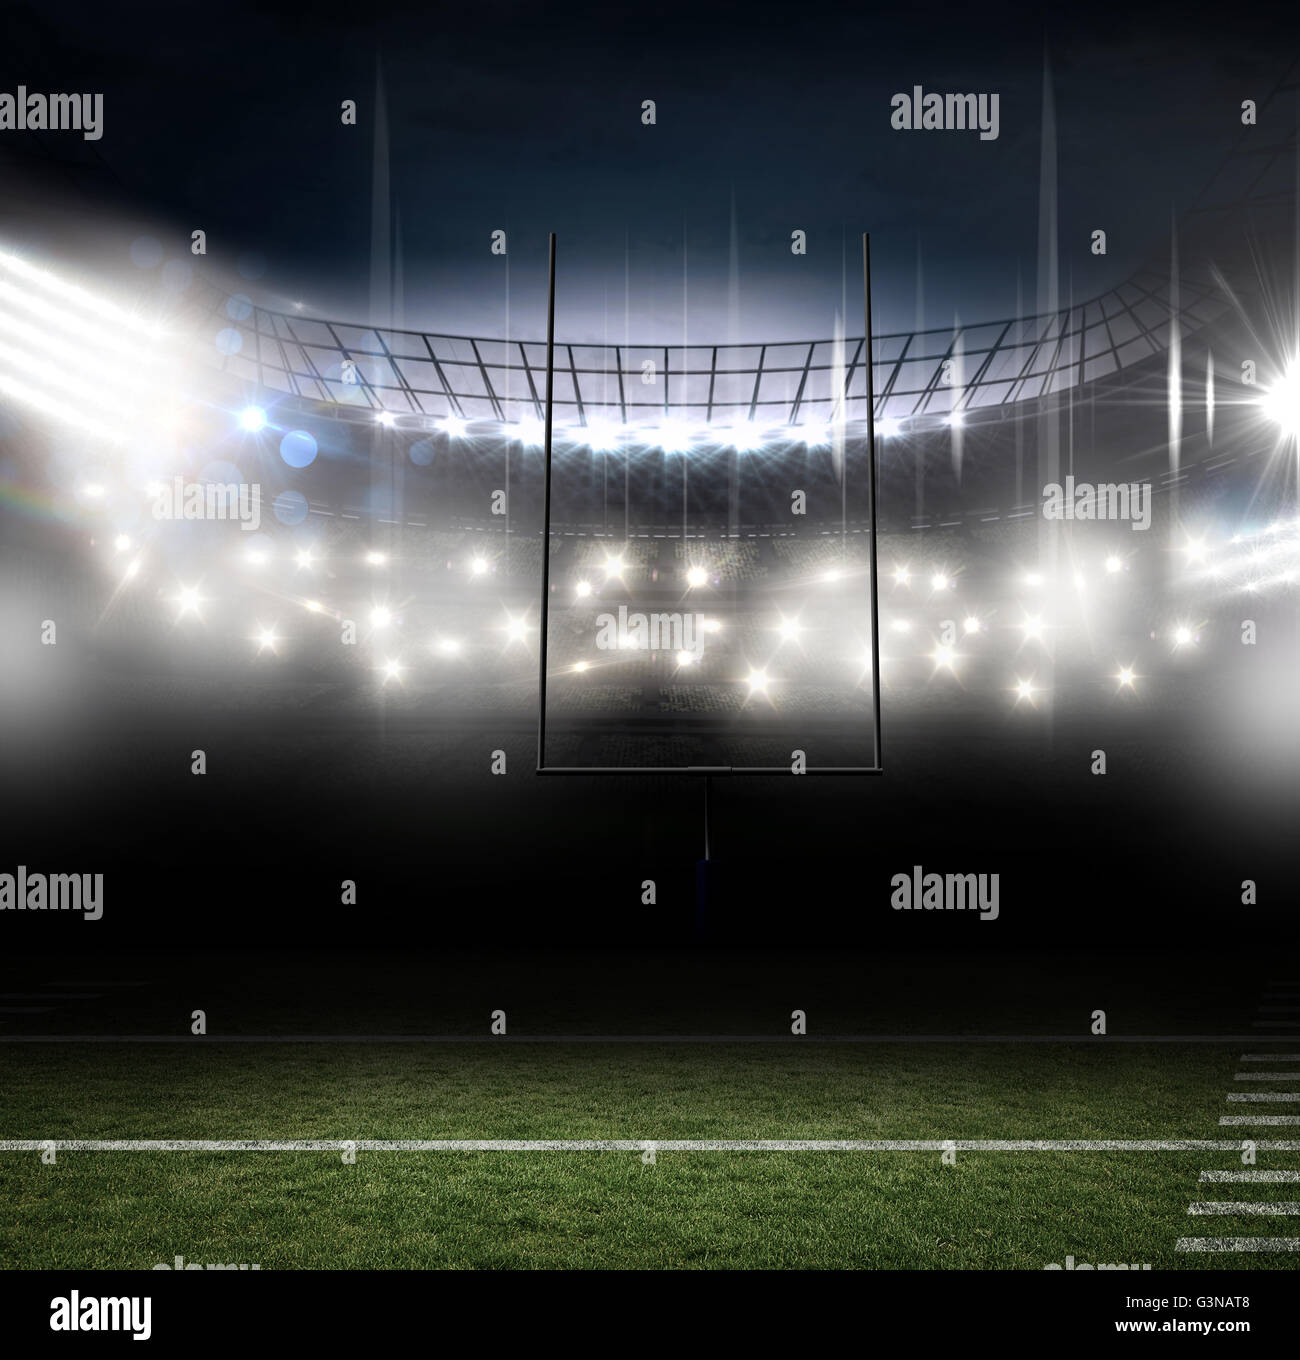 American football arena - Stock Image